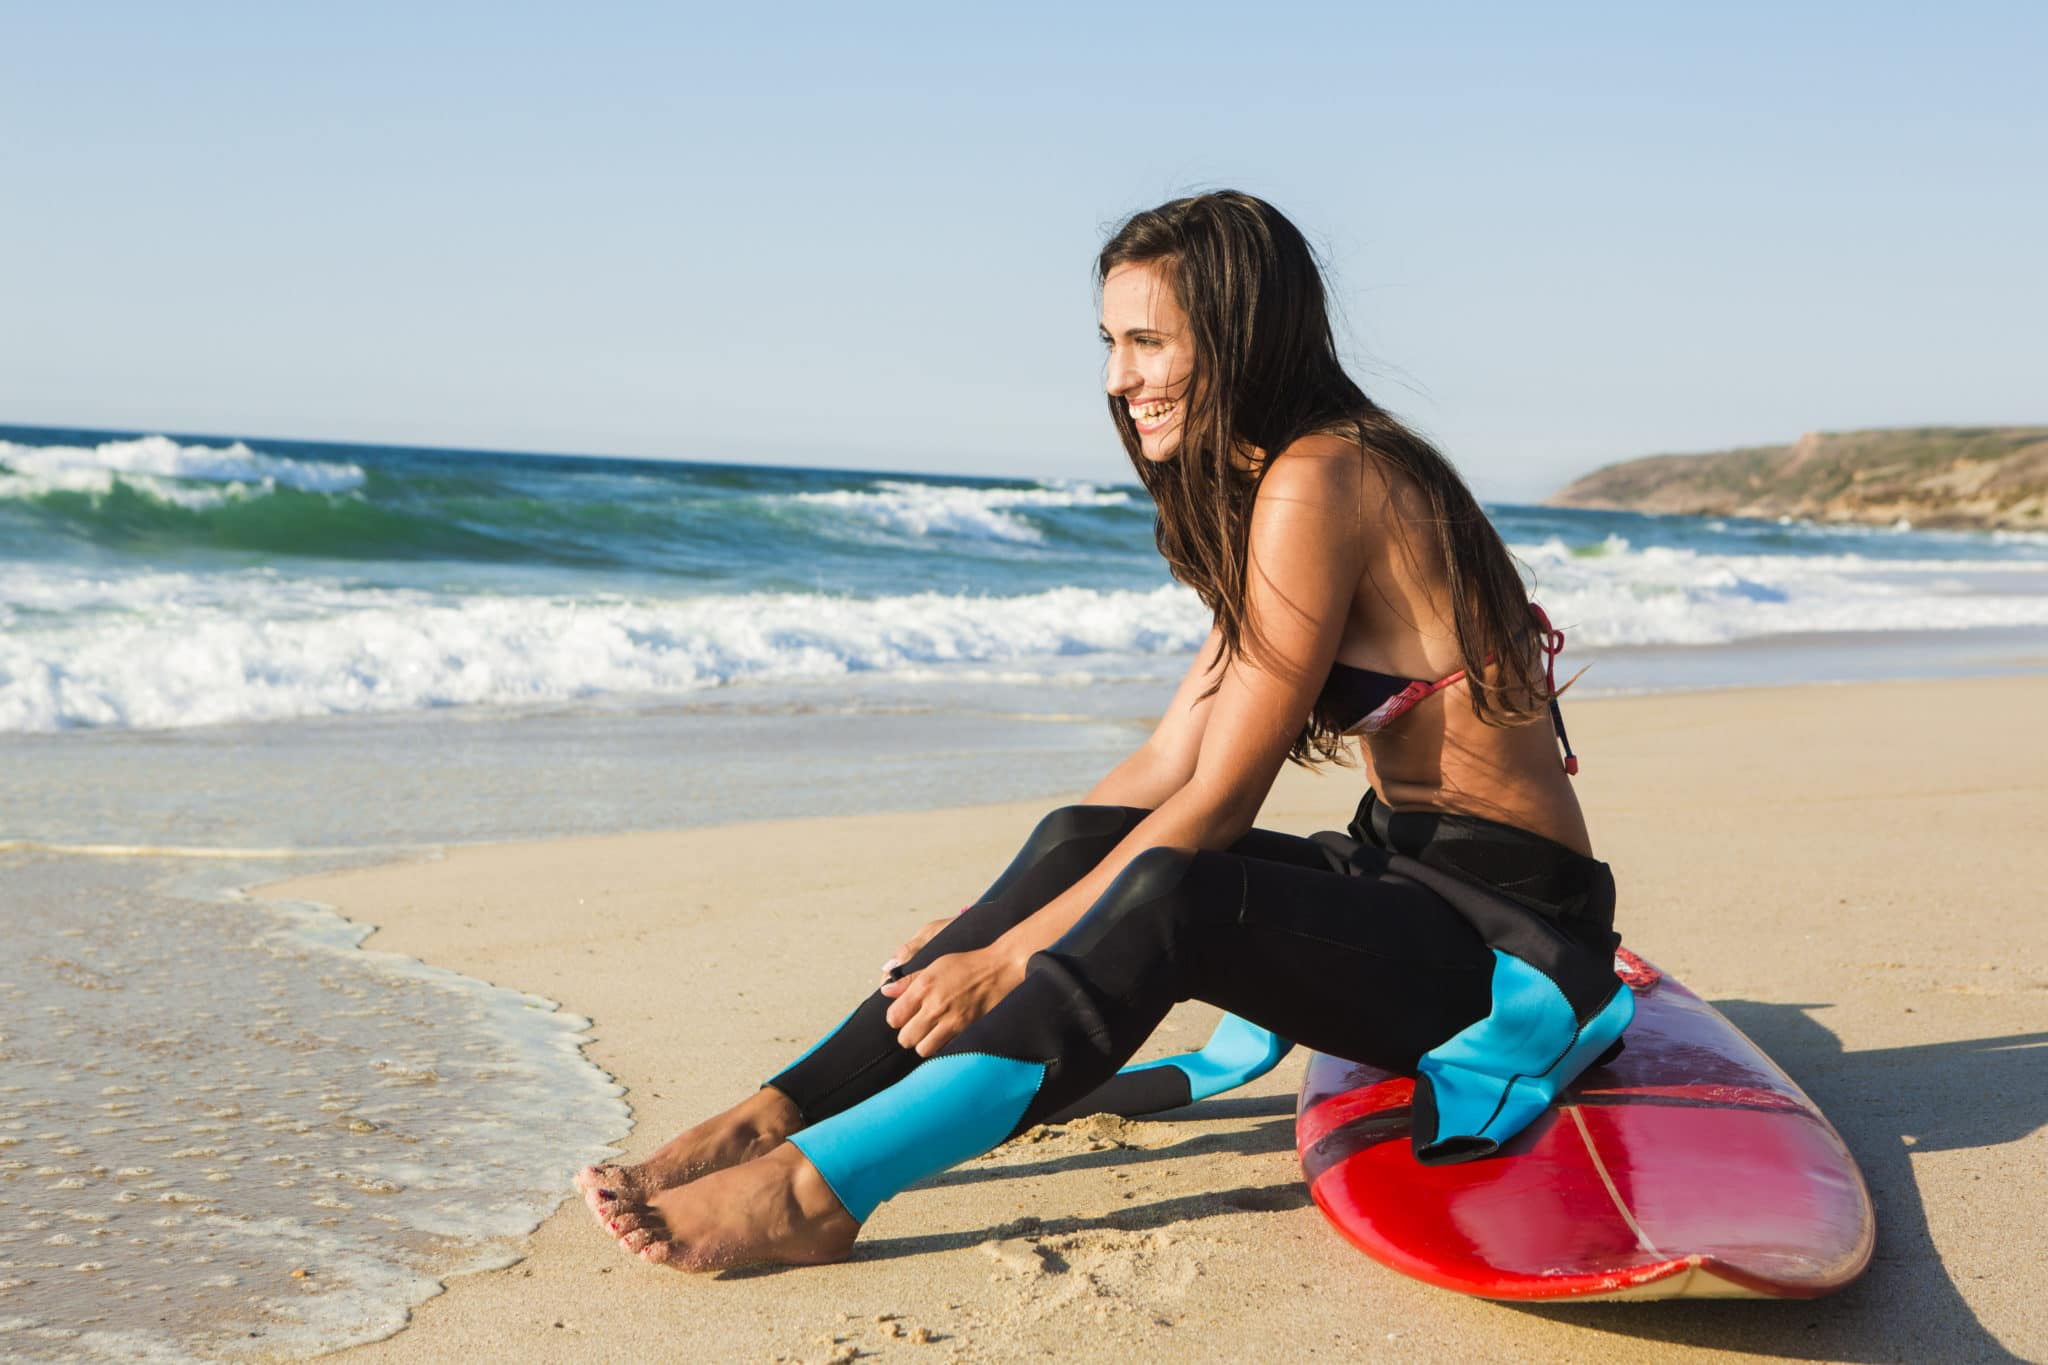 Image of female surfer